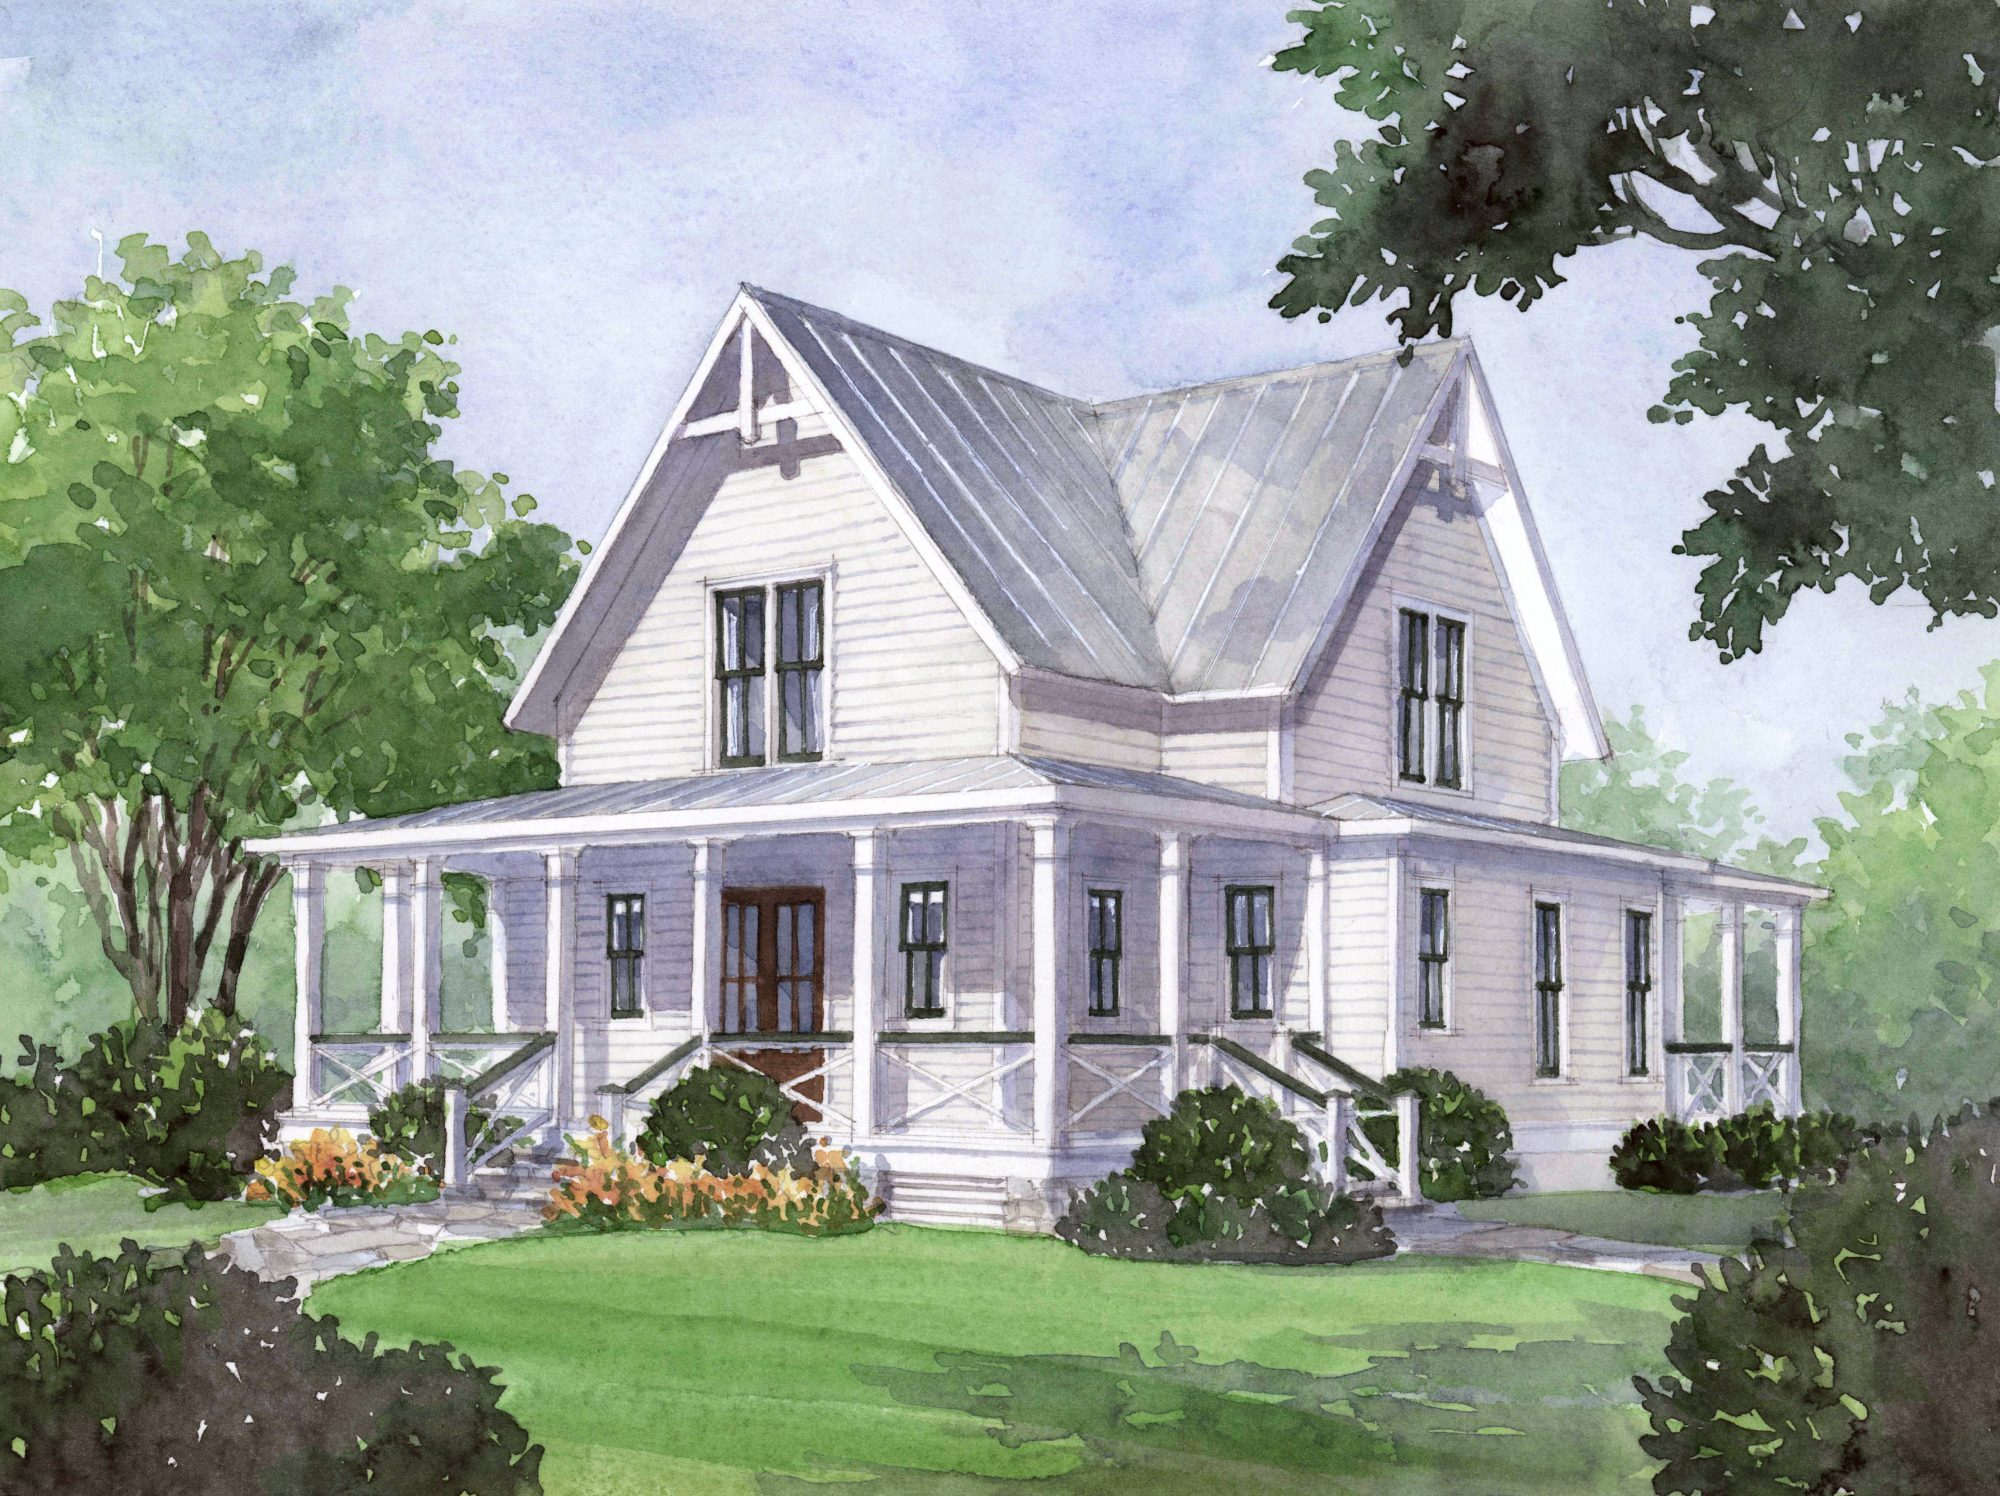 House Plan of the Month: Four Gables - Southern Living